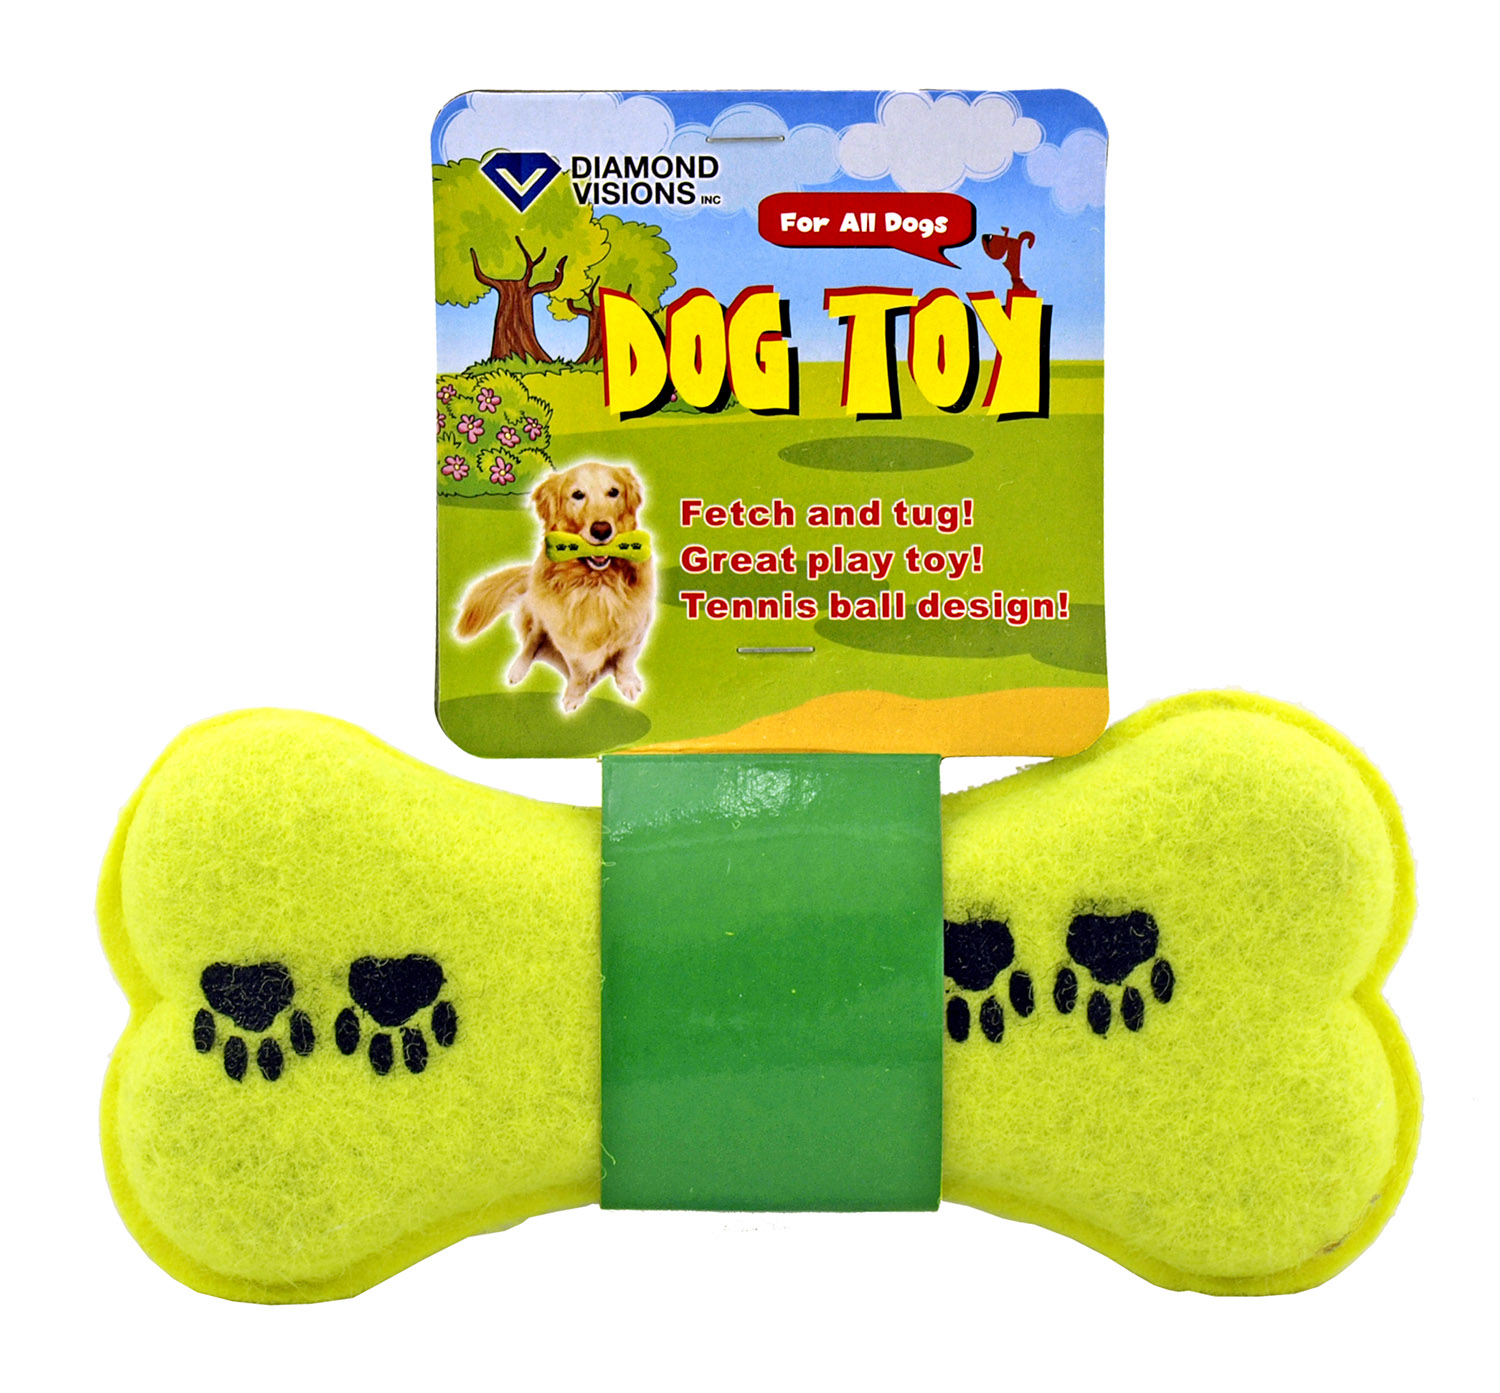 Fetch and Tug Tennis Ball Dog Bone Toy for Large and Small Dogs - Diamond Visions